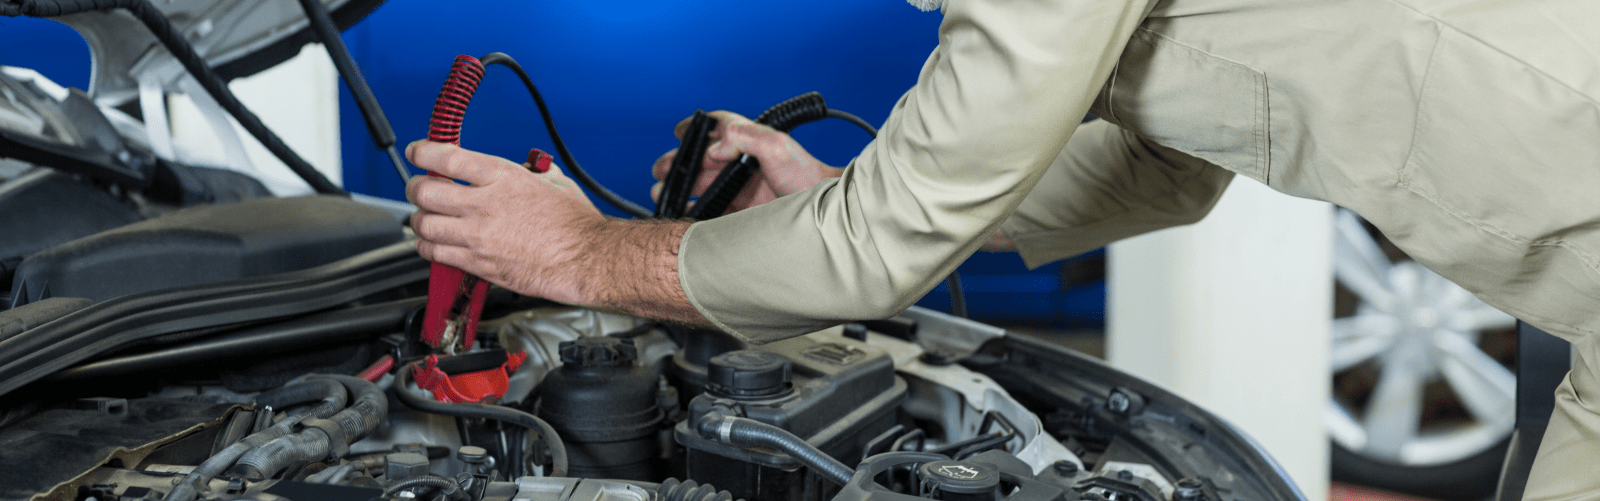 Get car battery replacement in dubai at ServiceMyCar